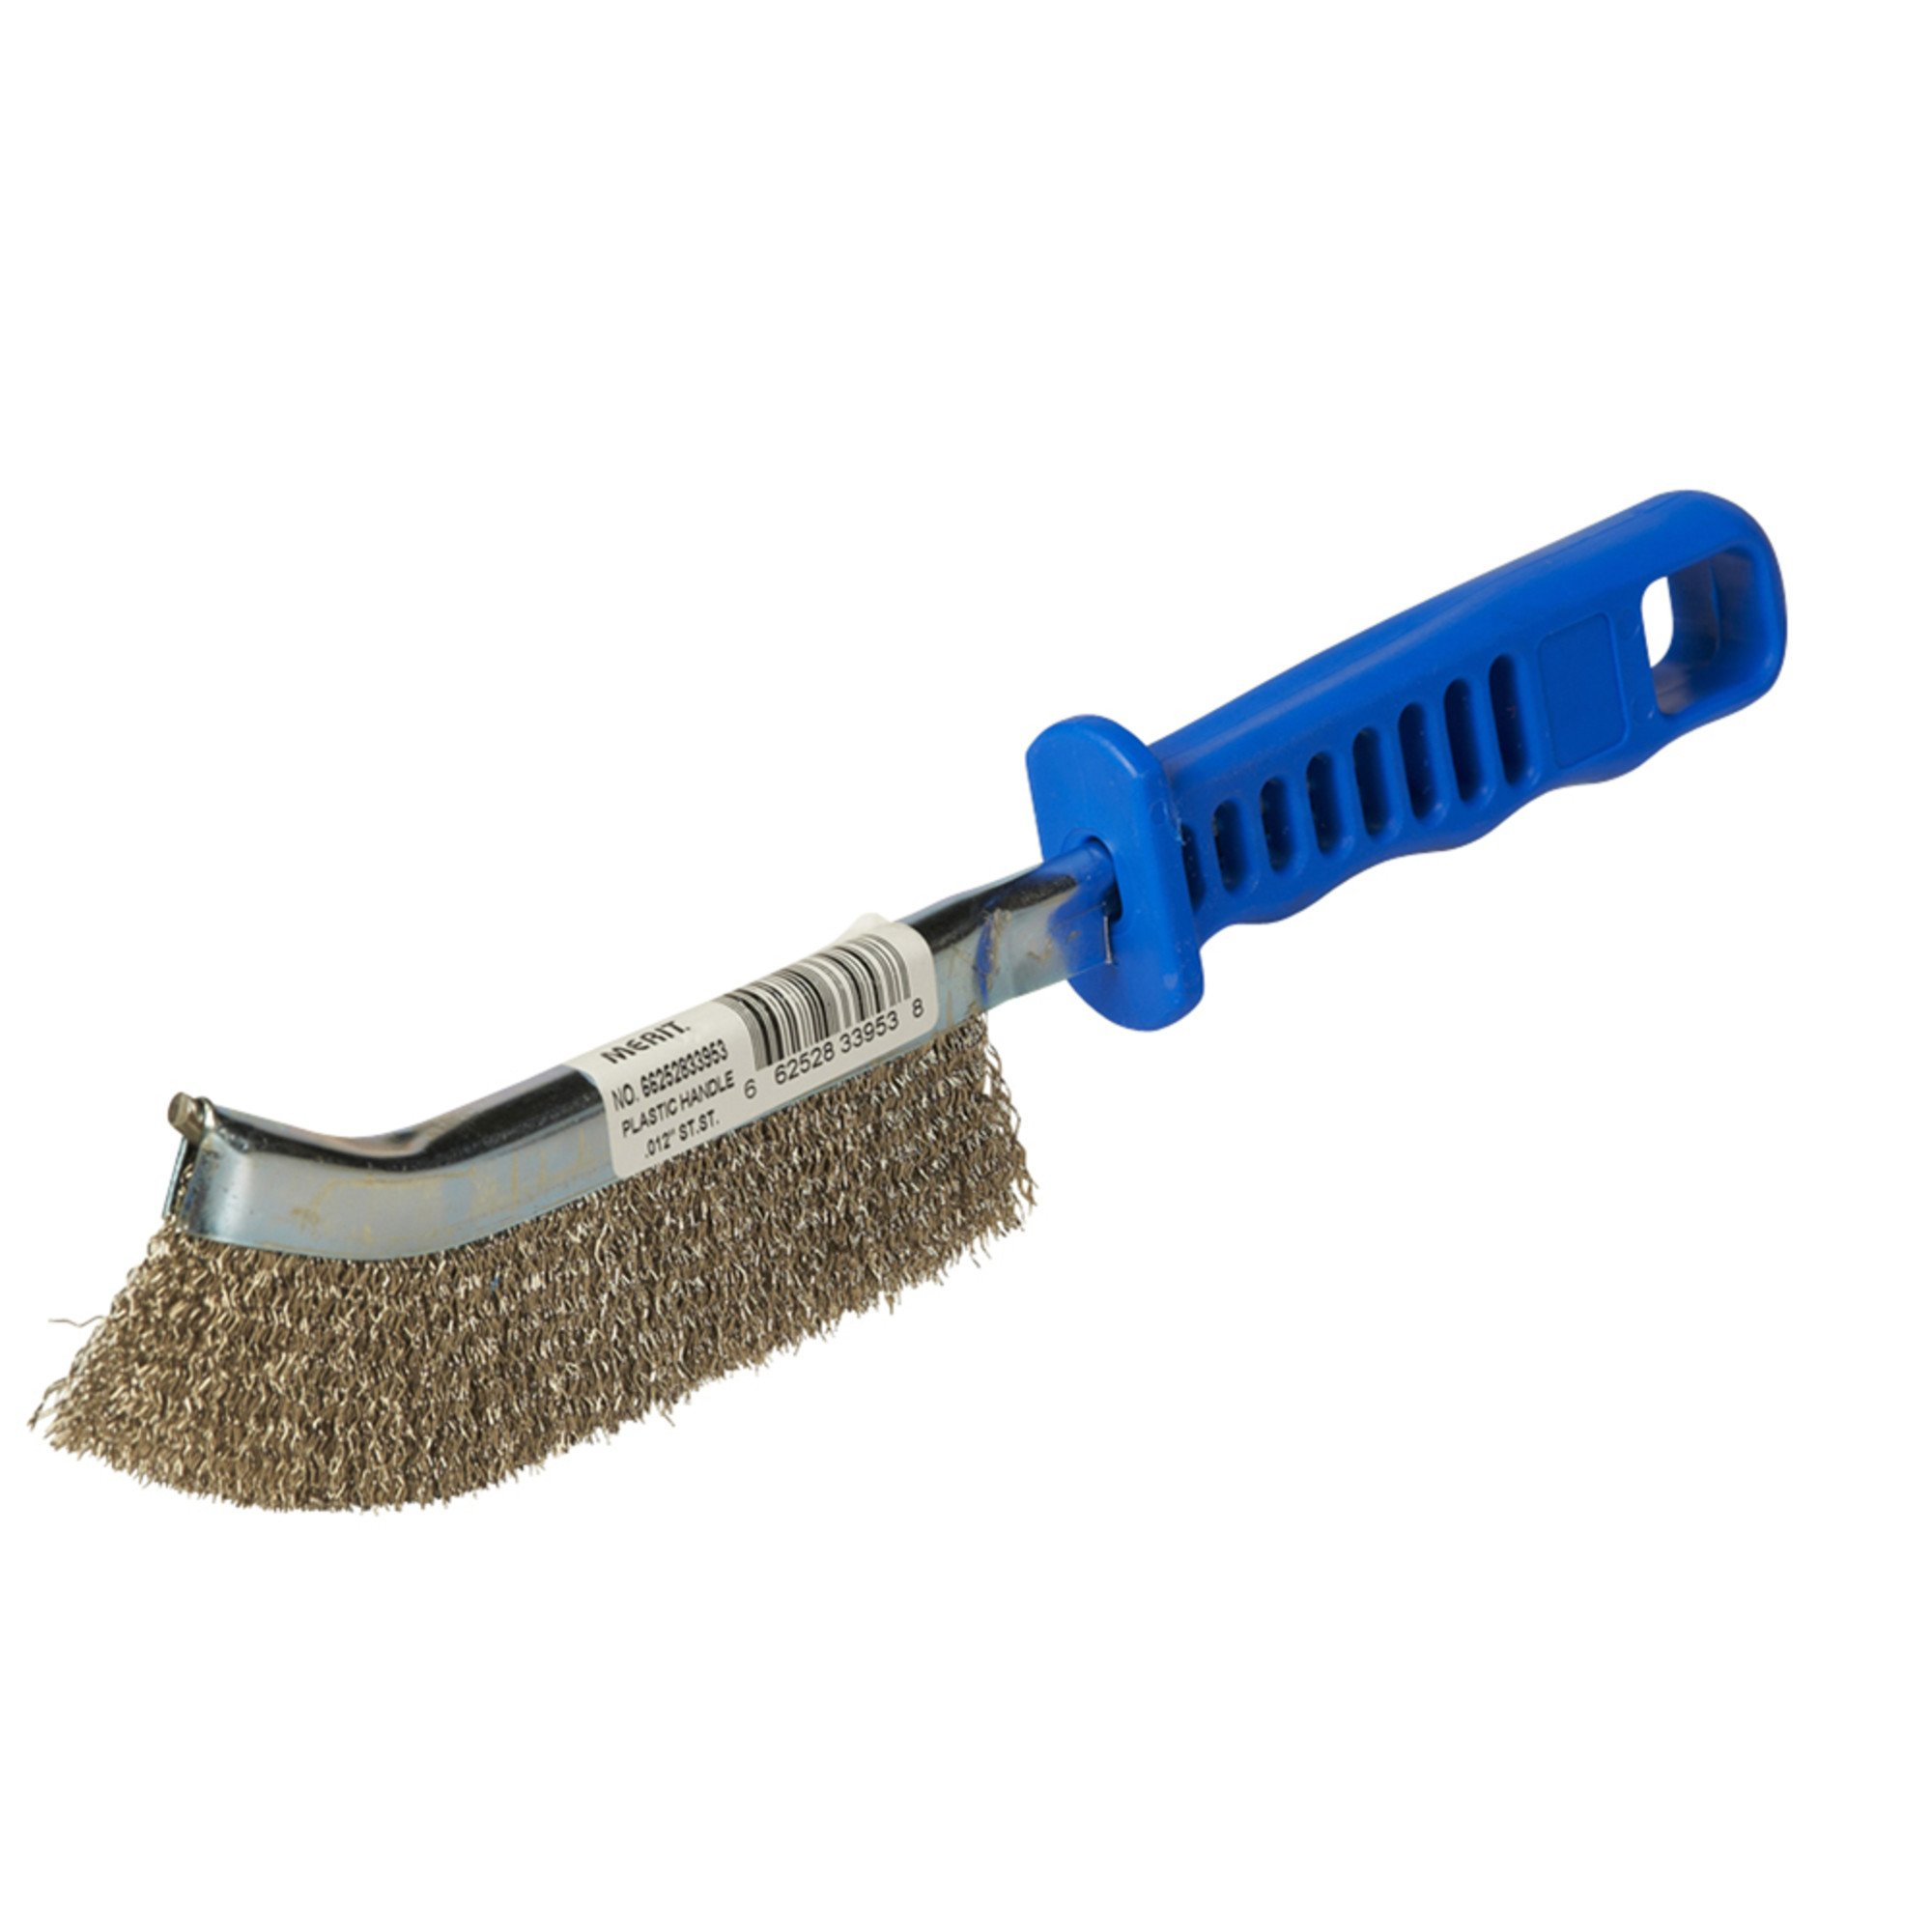 Norton Hand Scratch Brush for Stainless Steel with Plastic Handle, Stainless Steel Bristles (1 Brush)